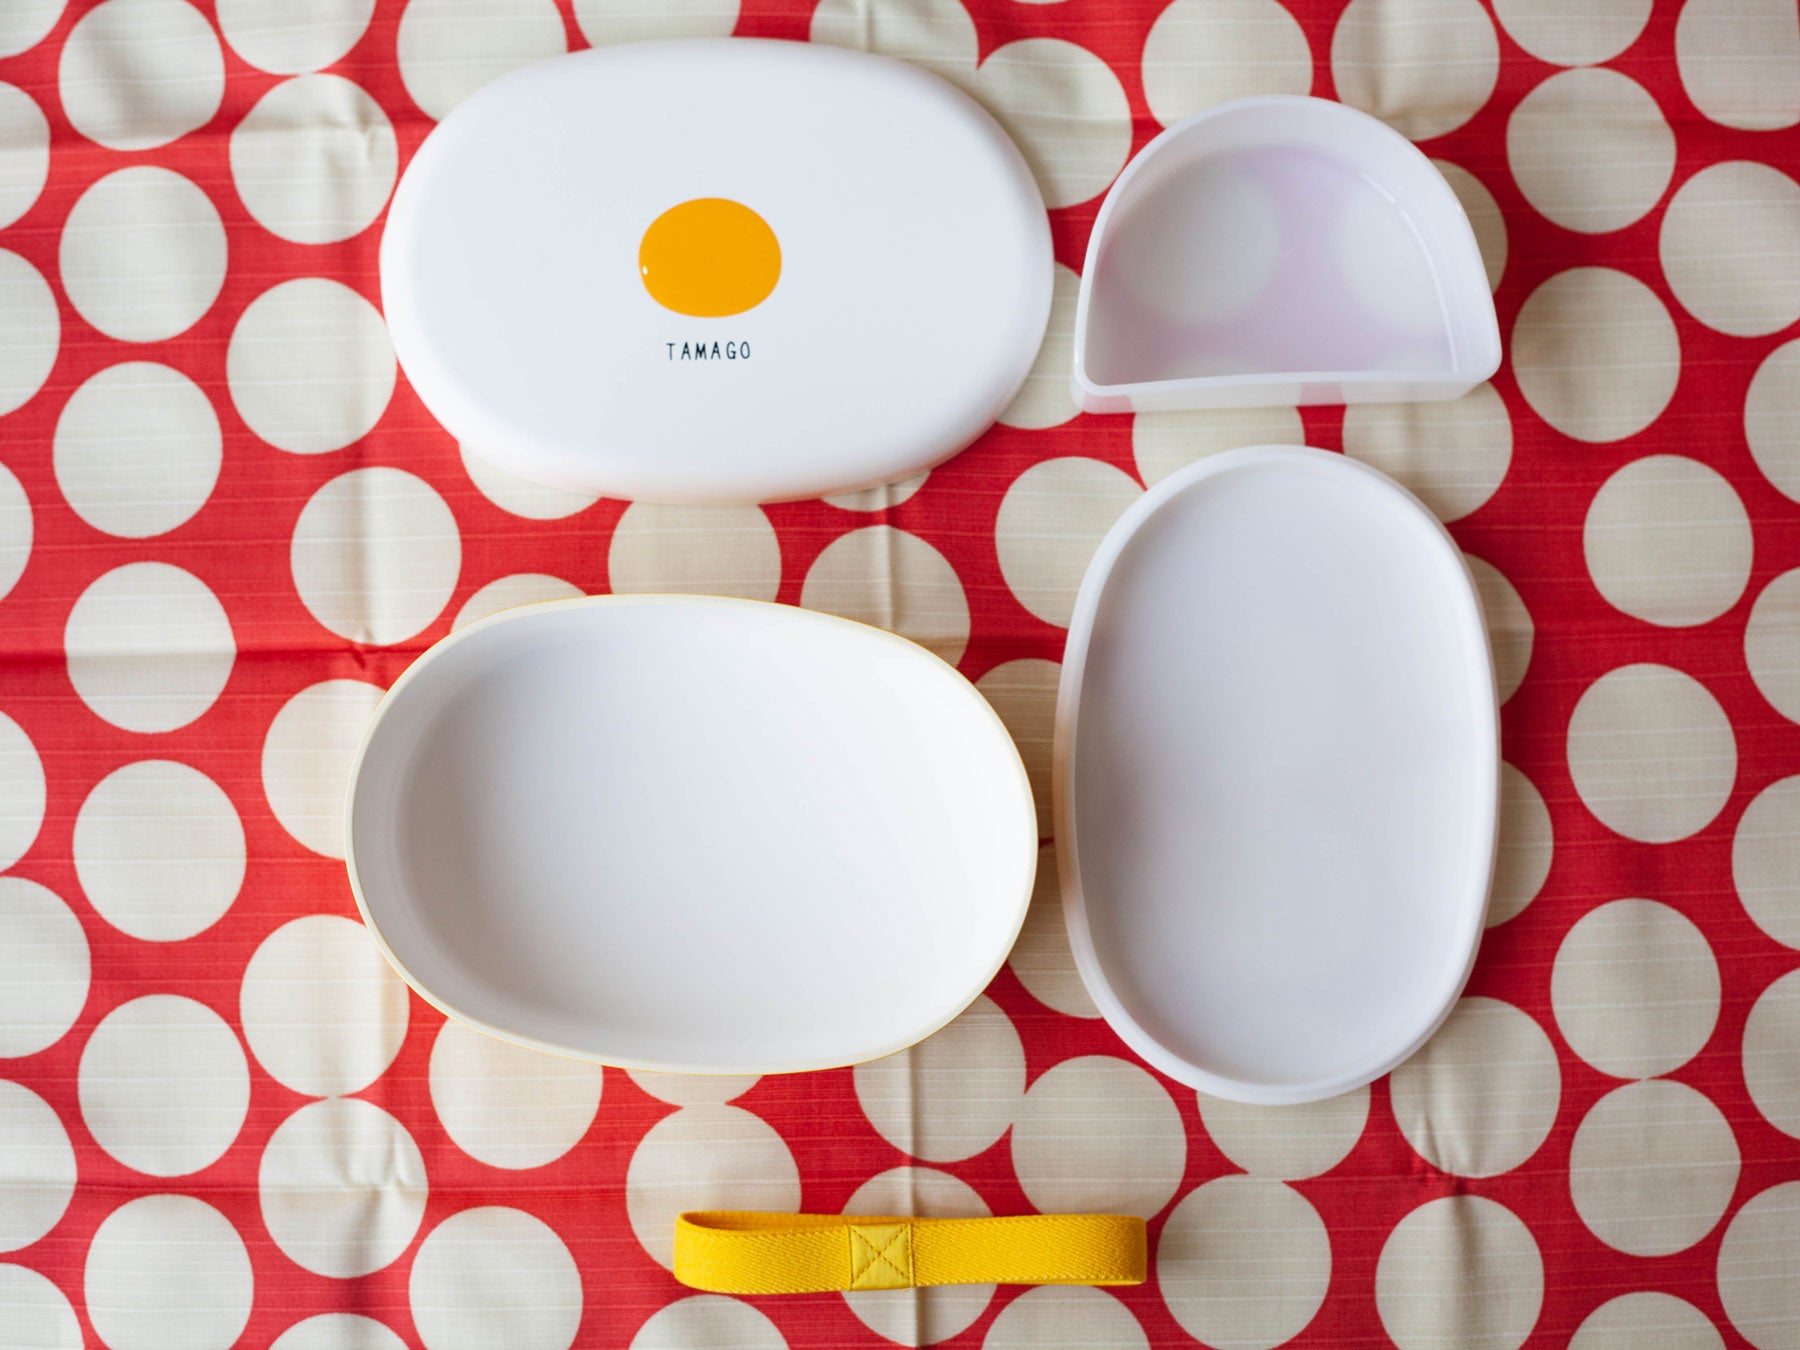 Toppings Oval Bento Box | Tamago by Hakoya - Bento&co Japanese Bento Lunch Boxes and Kitchenware Specialists